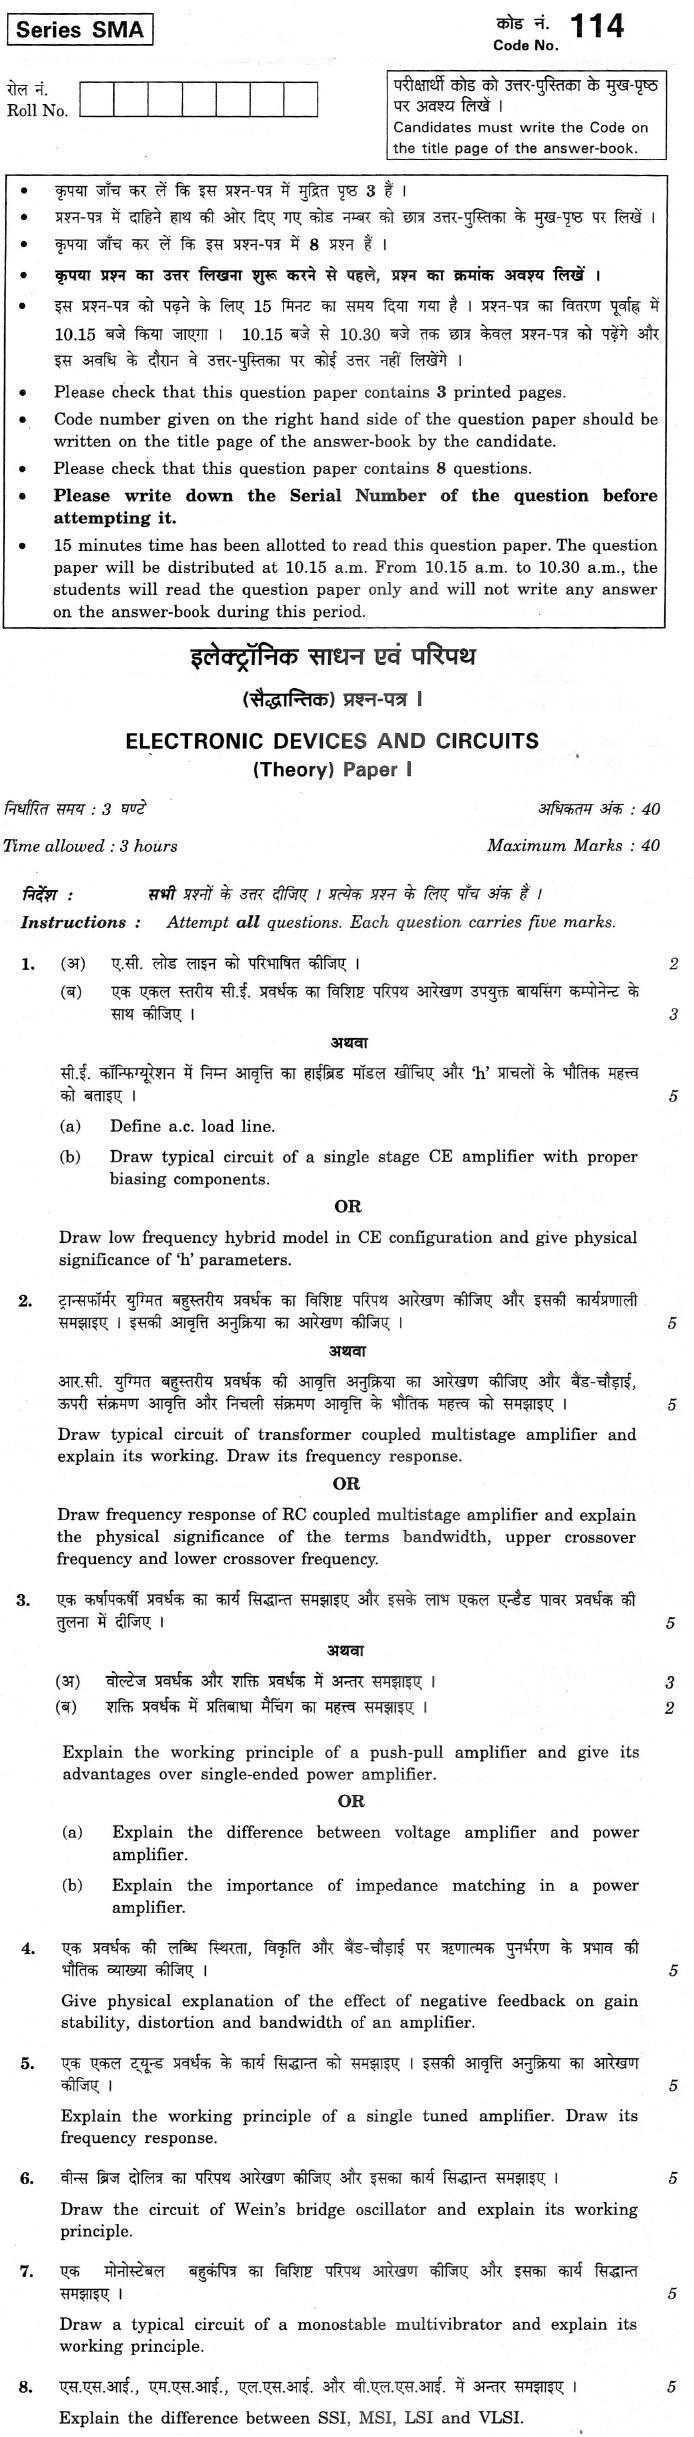 CBSE Class XII Previous Year Question Paper 2012 Electronic Devices and Circuits